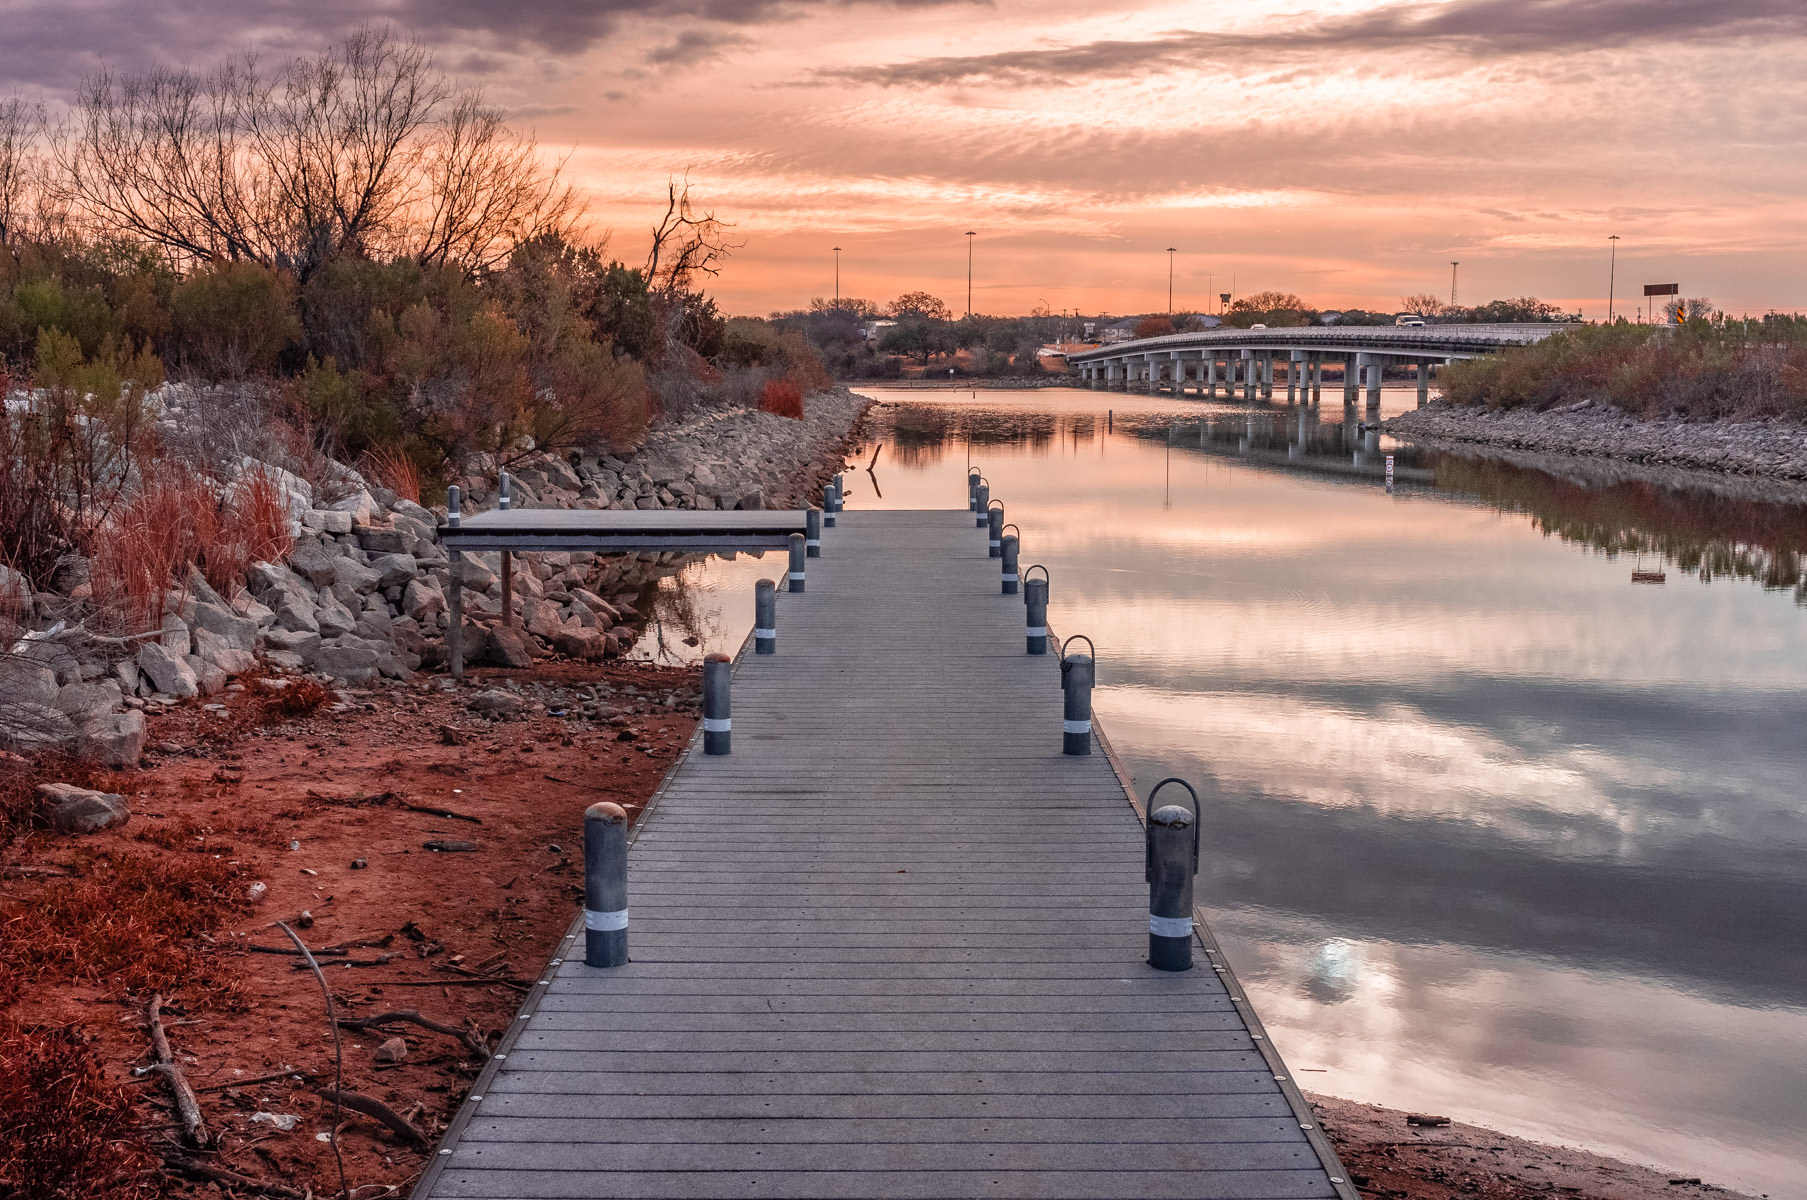 A pier—made almost useless by low water levels—greets the morning sun at Lake Granbury, Texas.